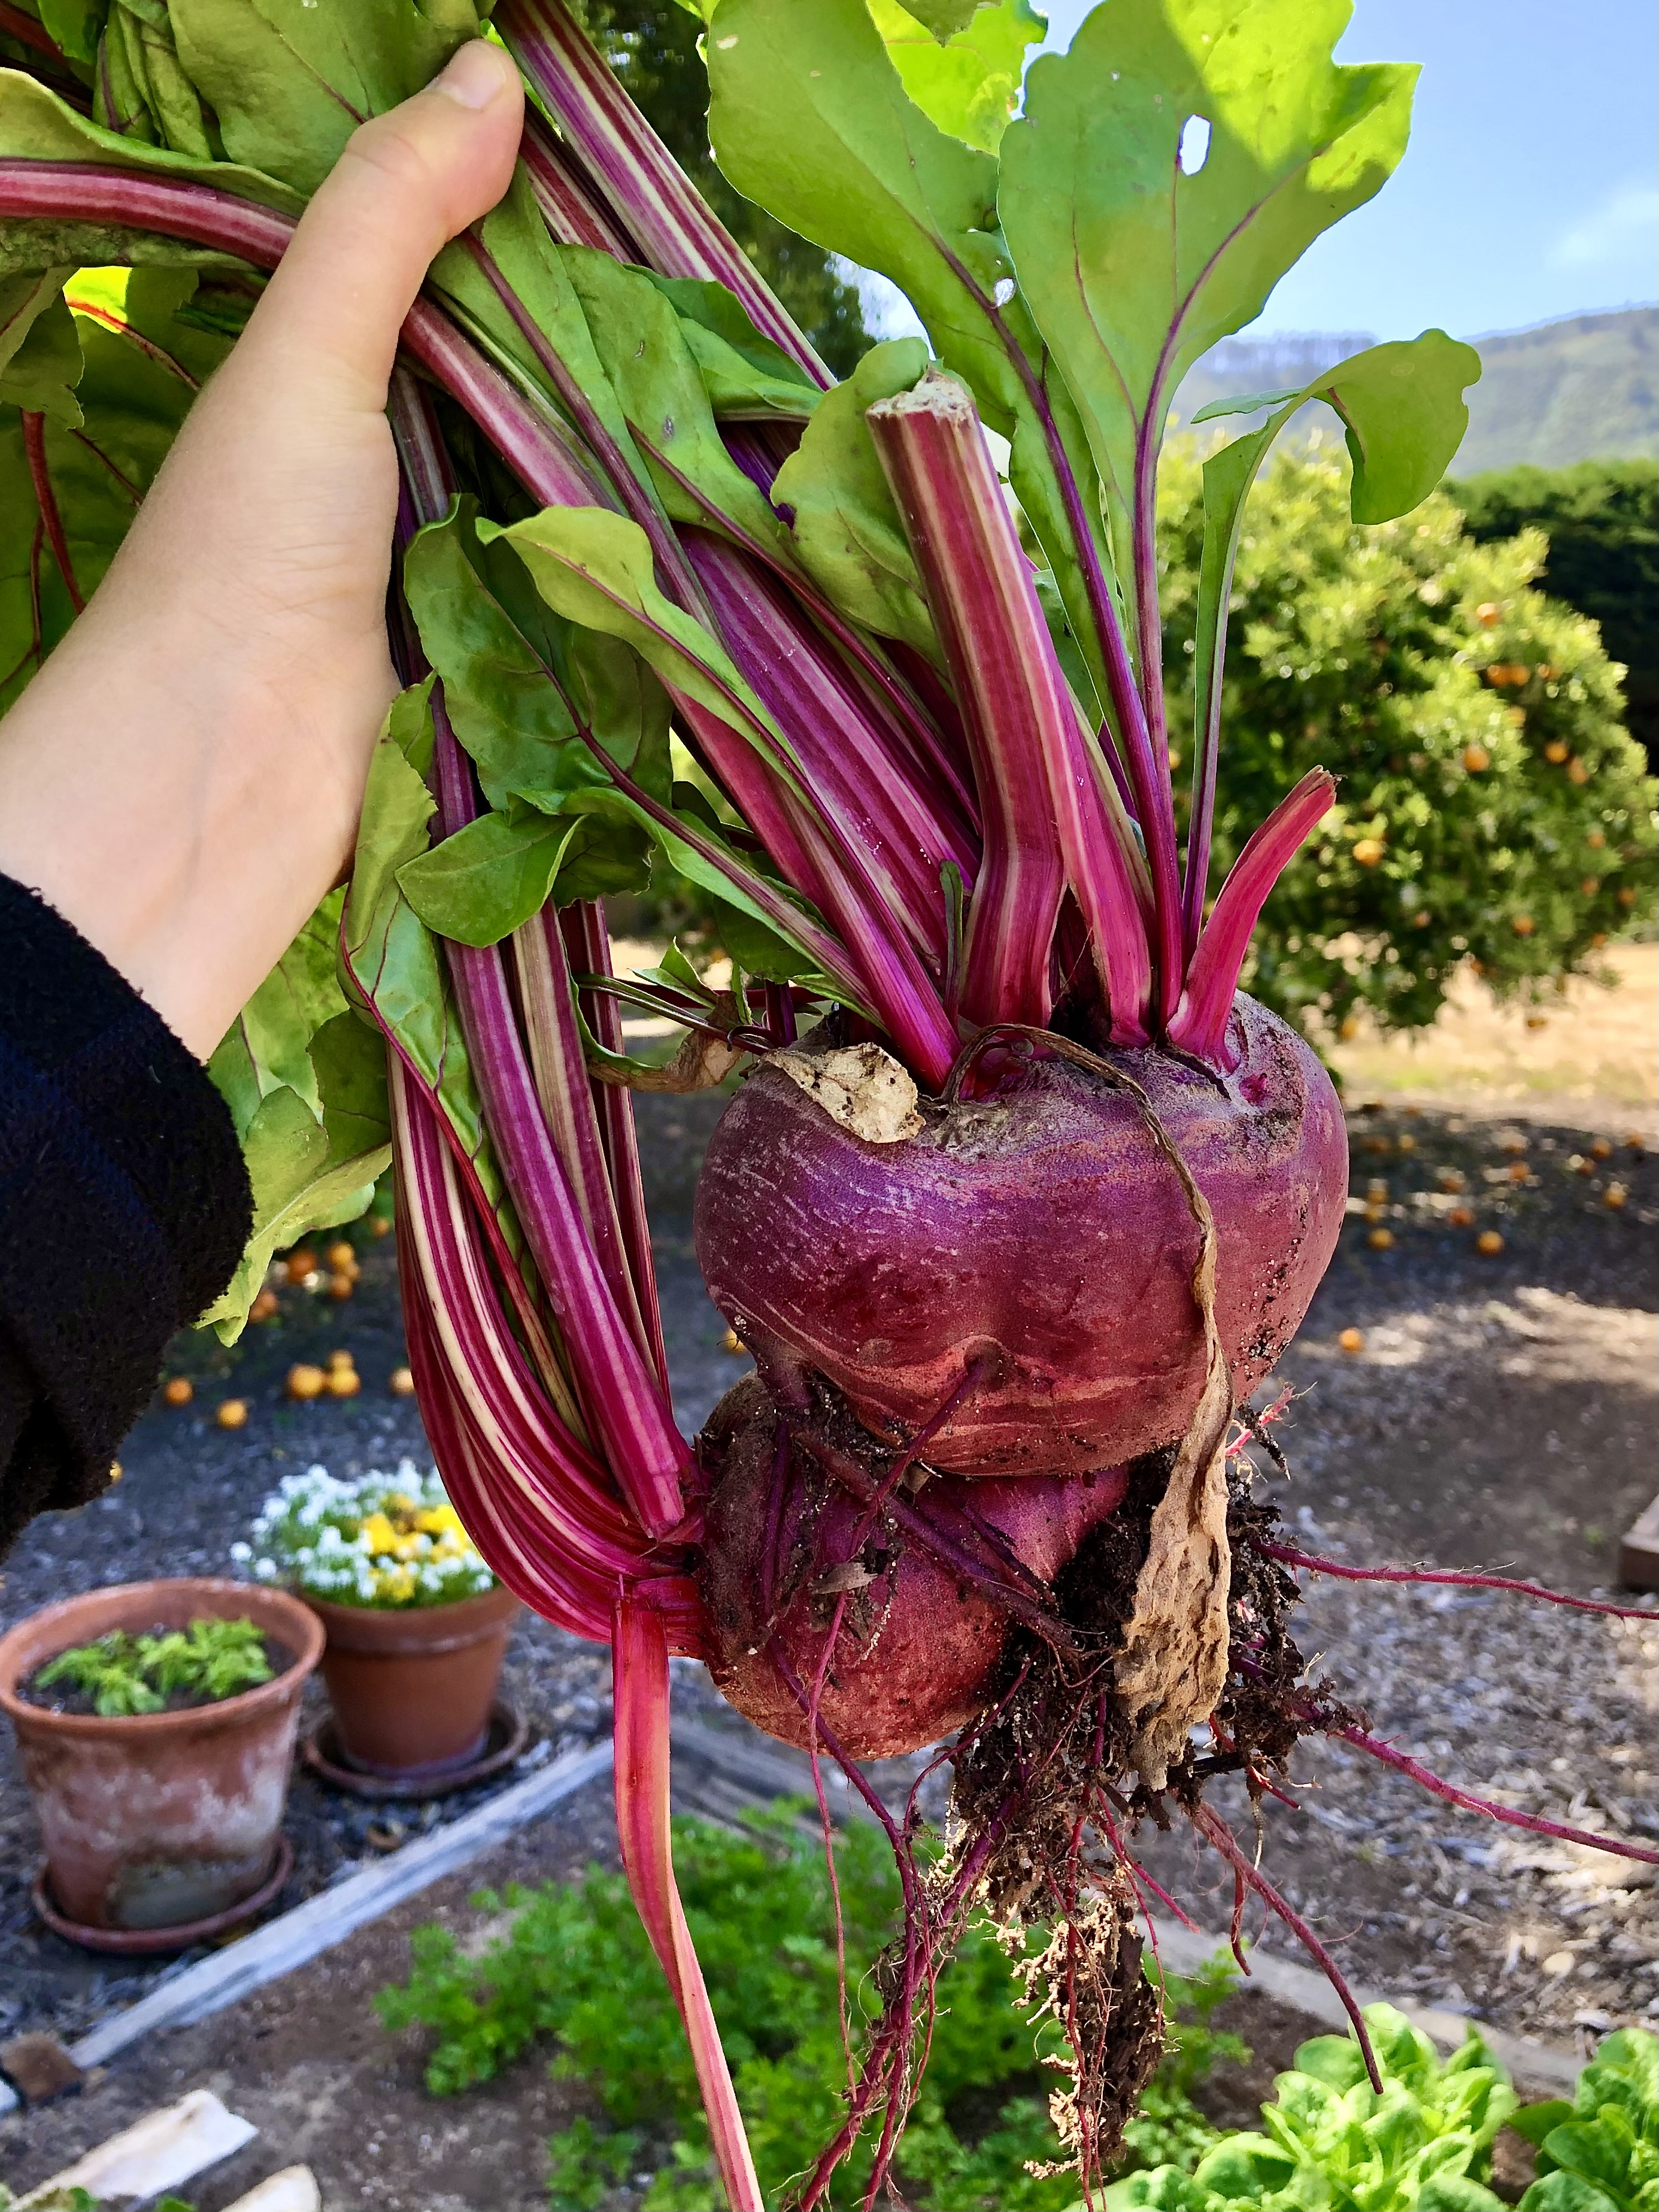 Homegrown Beets, a Personal Favorite